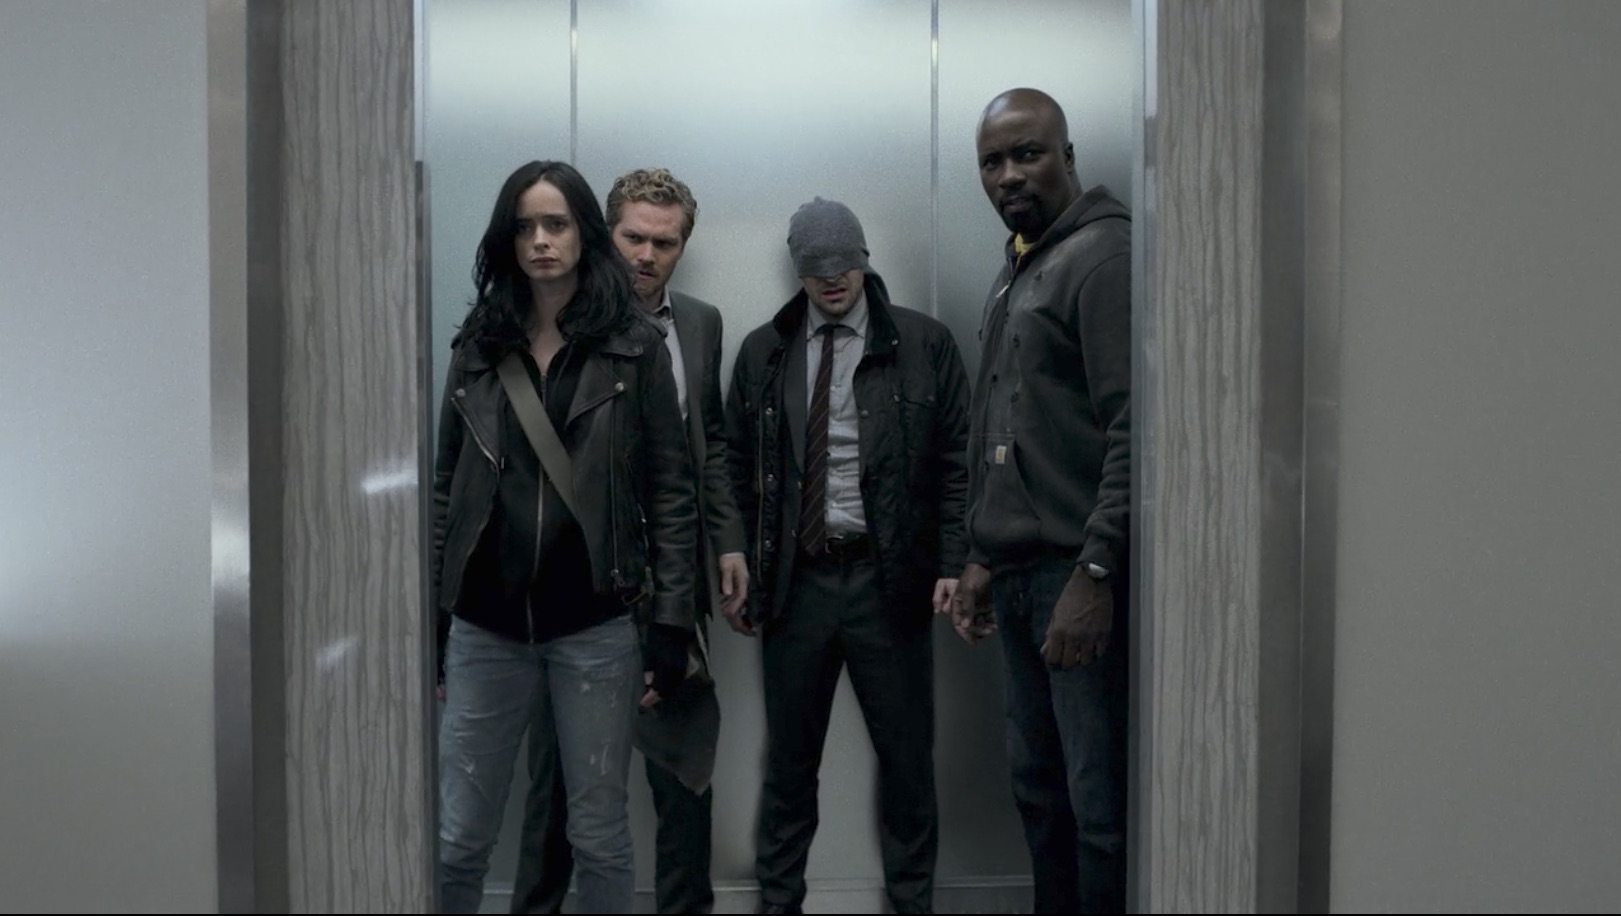 Defenders (Earth-199999)/Gallery